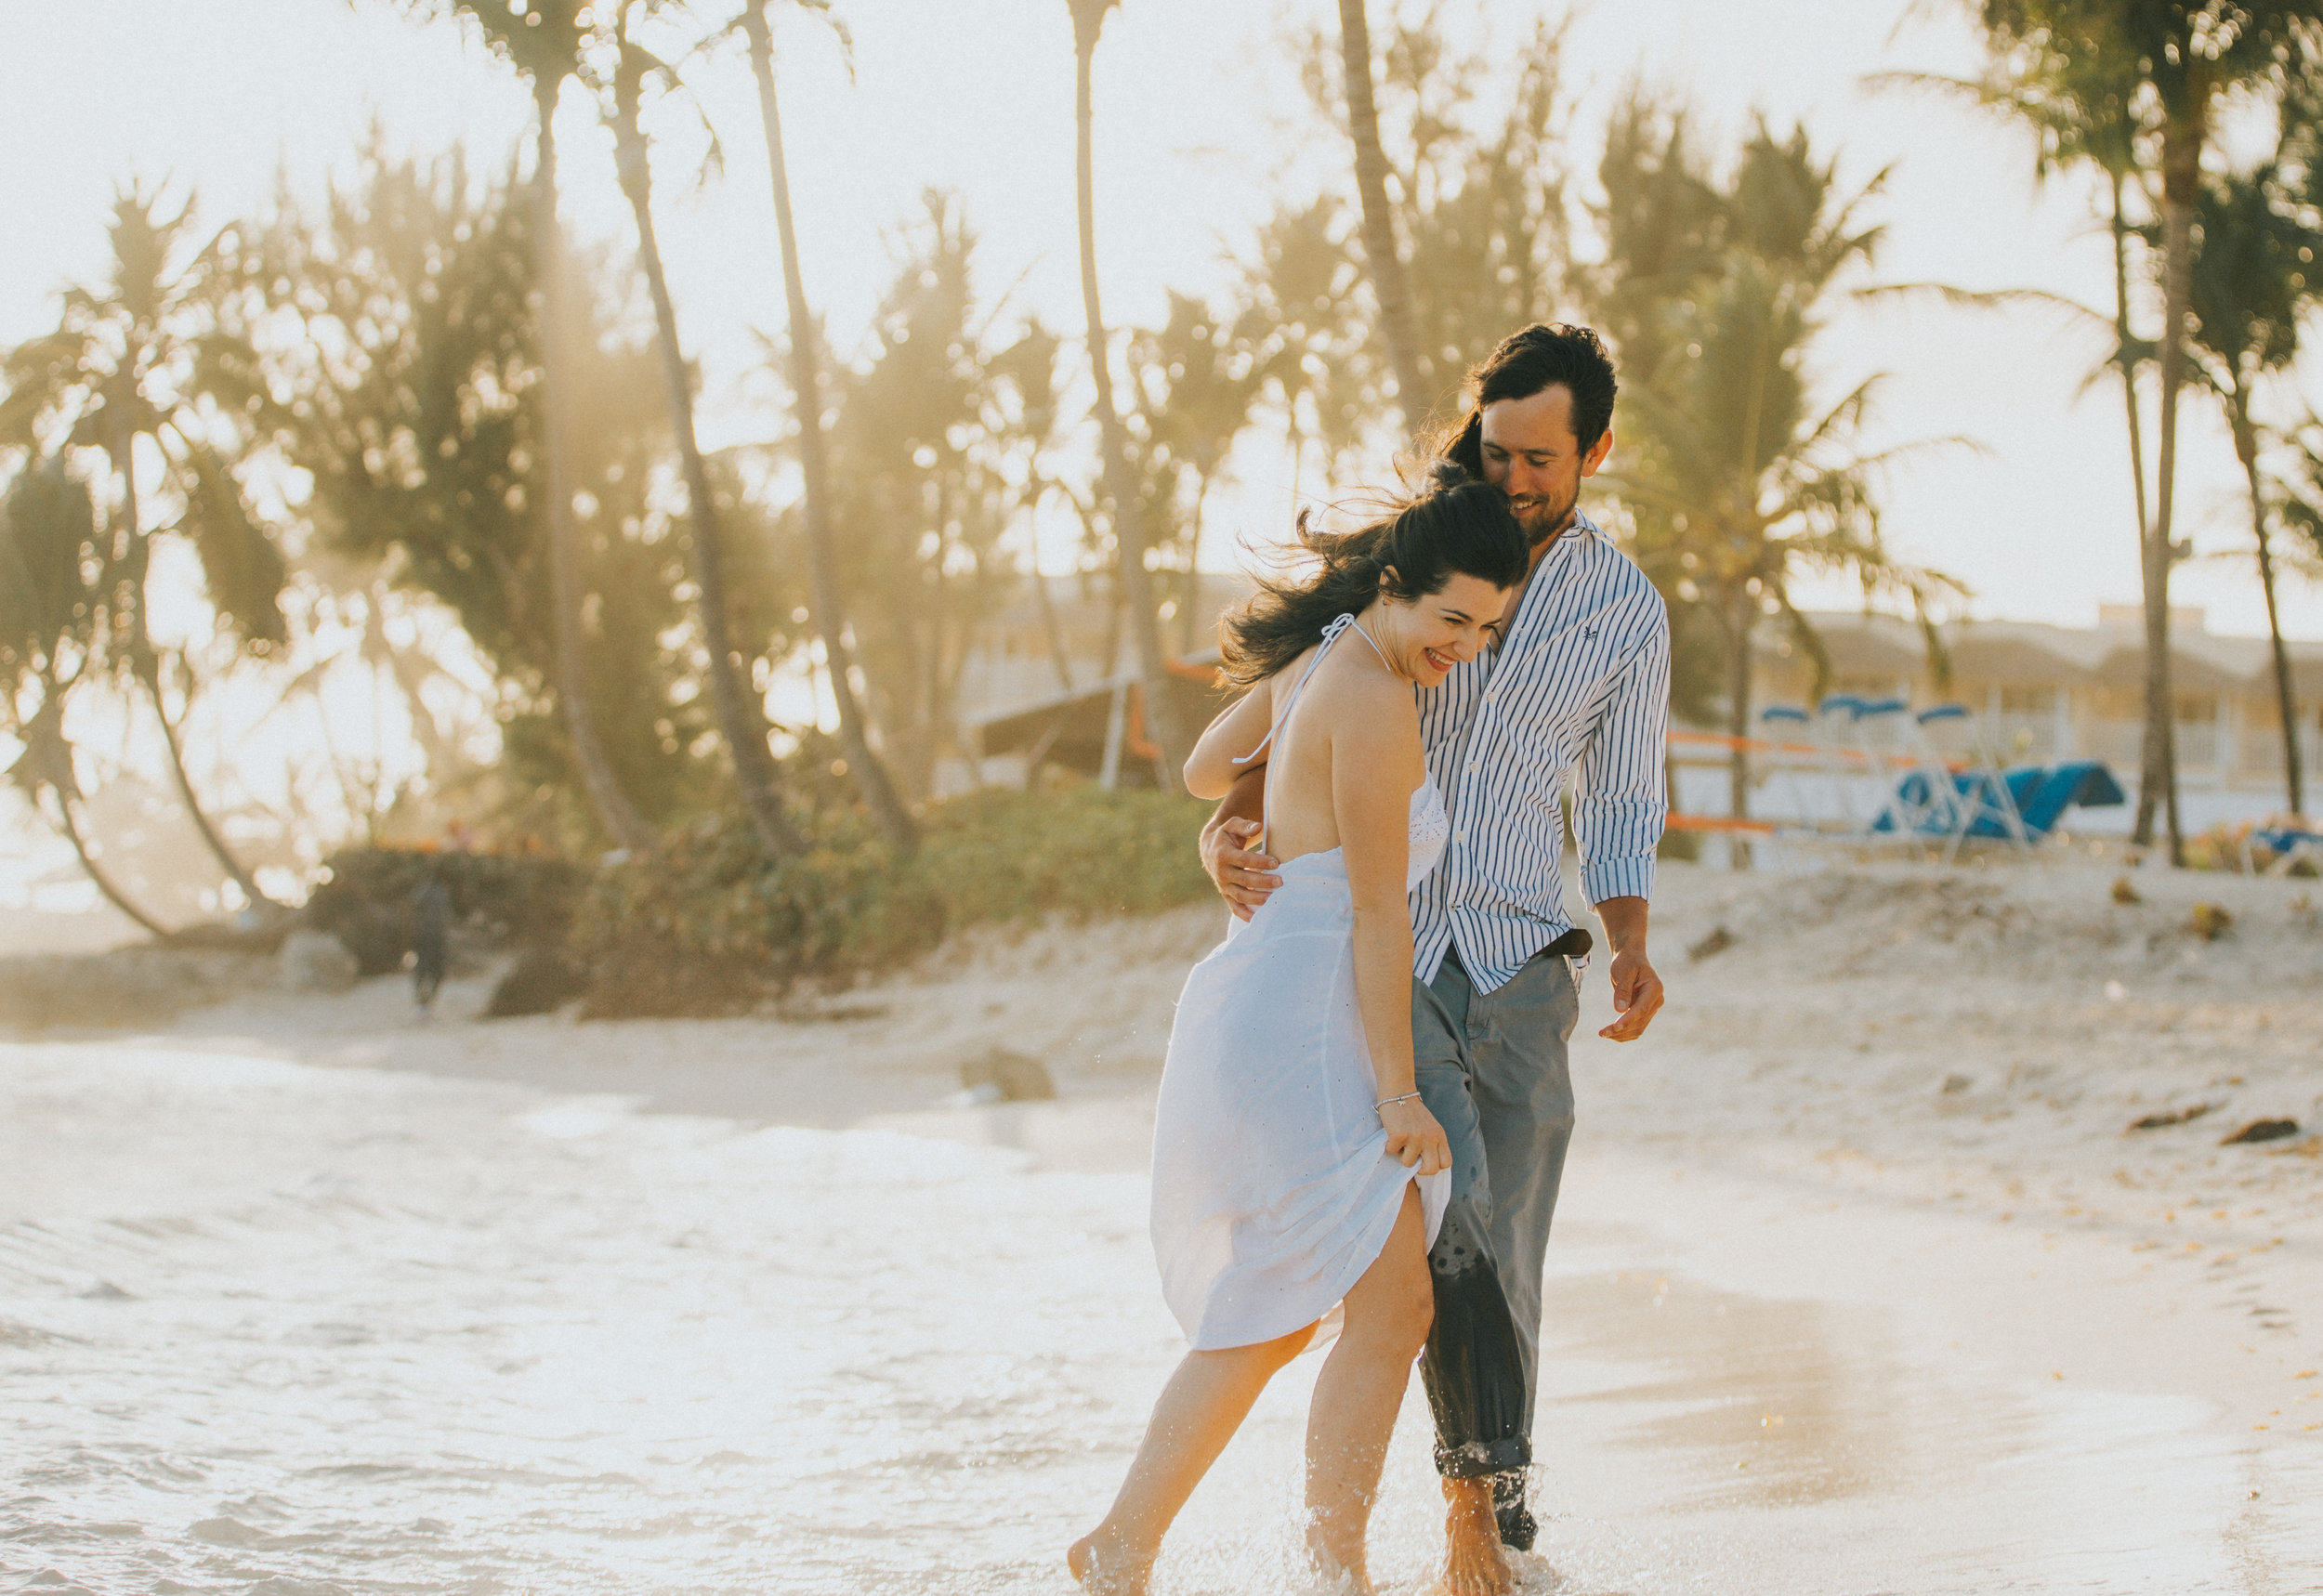 - It would be an honour to accompany you to your chosen wedding destination. Whether it be a sun drenched beach resort where you can marry bare foot on the sand, or against the striking backdrop of an international city that boasts unique architecture, culture and atmosphere